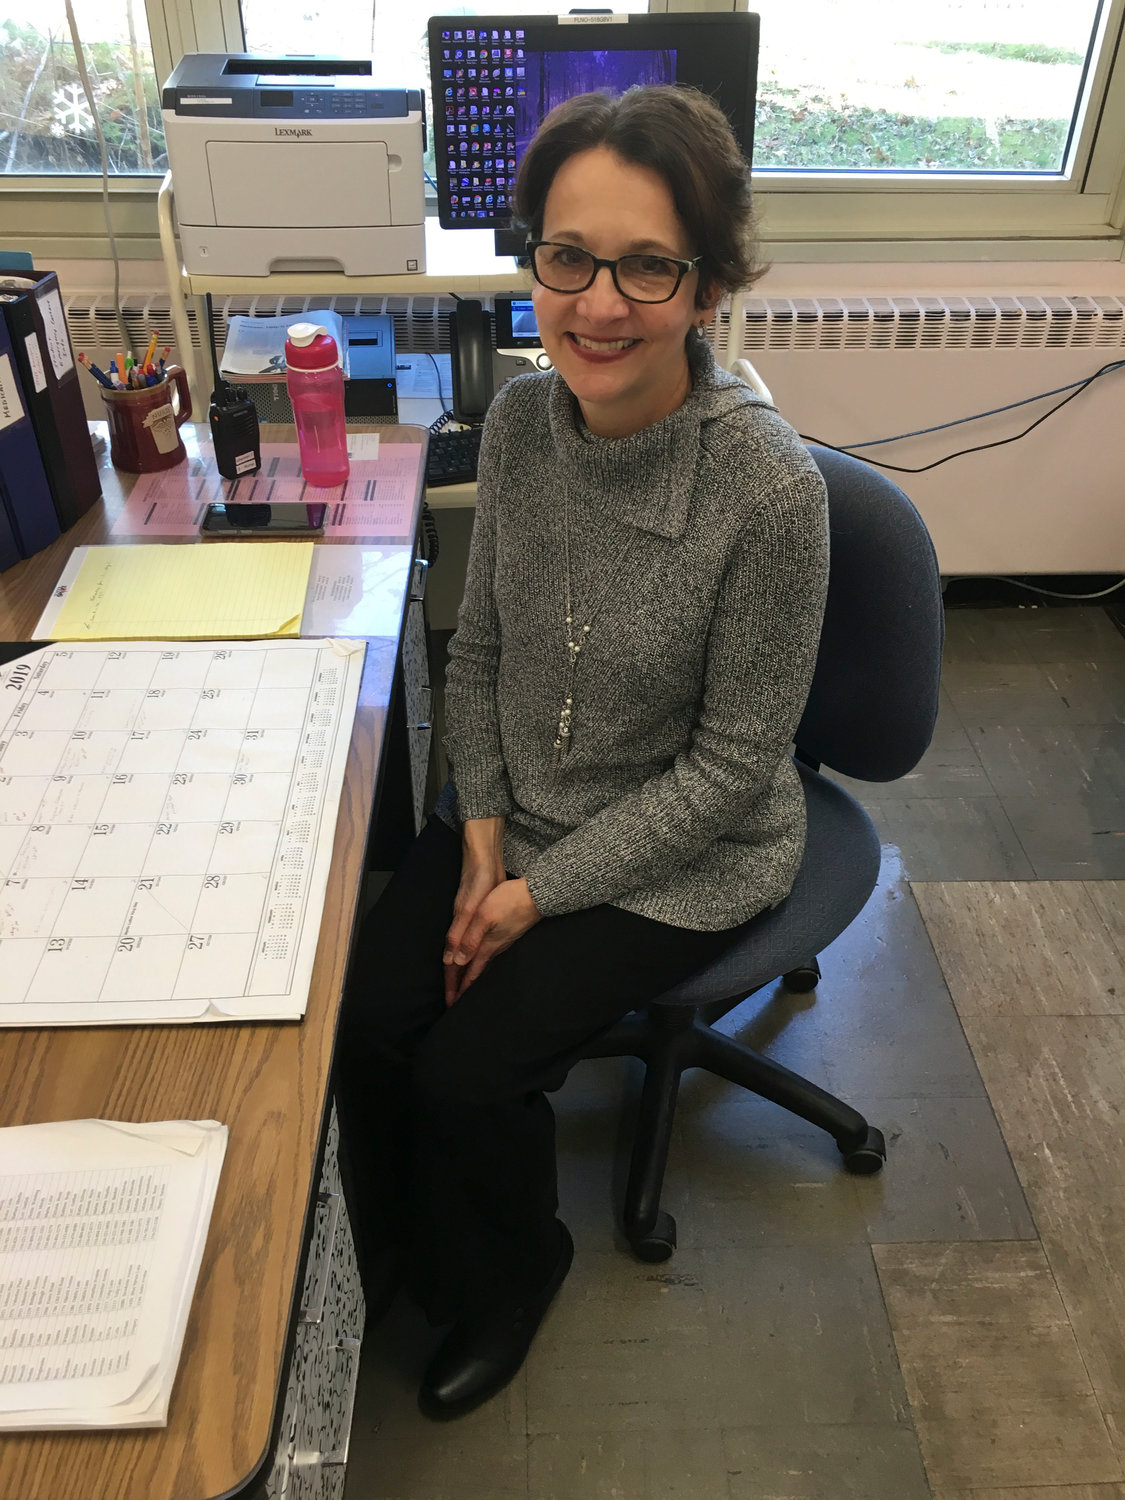 Victoria Alssid, the school nurse at Forest Lake Elementary School in Wantagh, began her career at Nationwide Children's Hospital in Columbus, Ohio, in 1979.